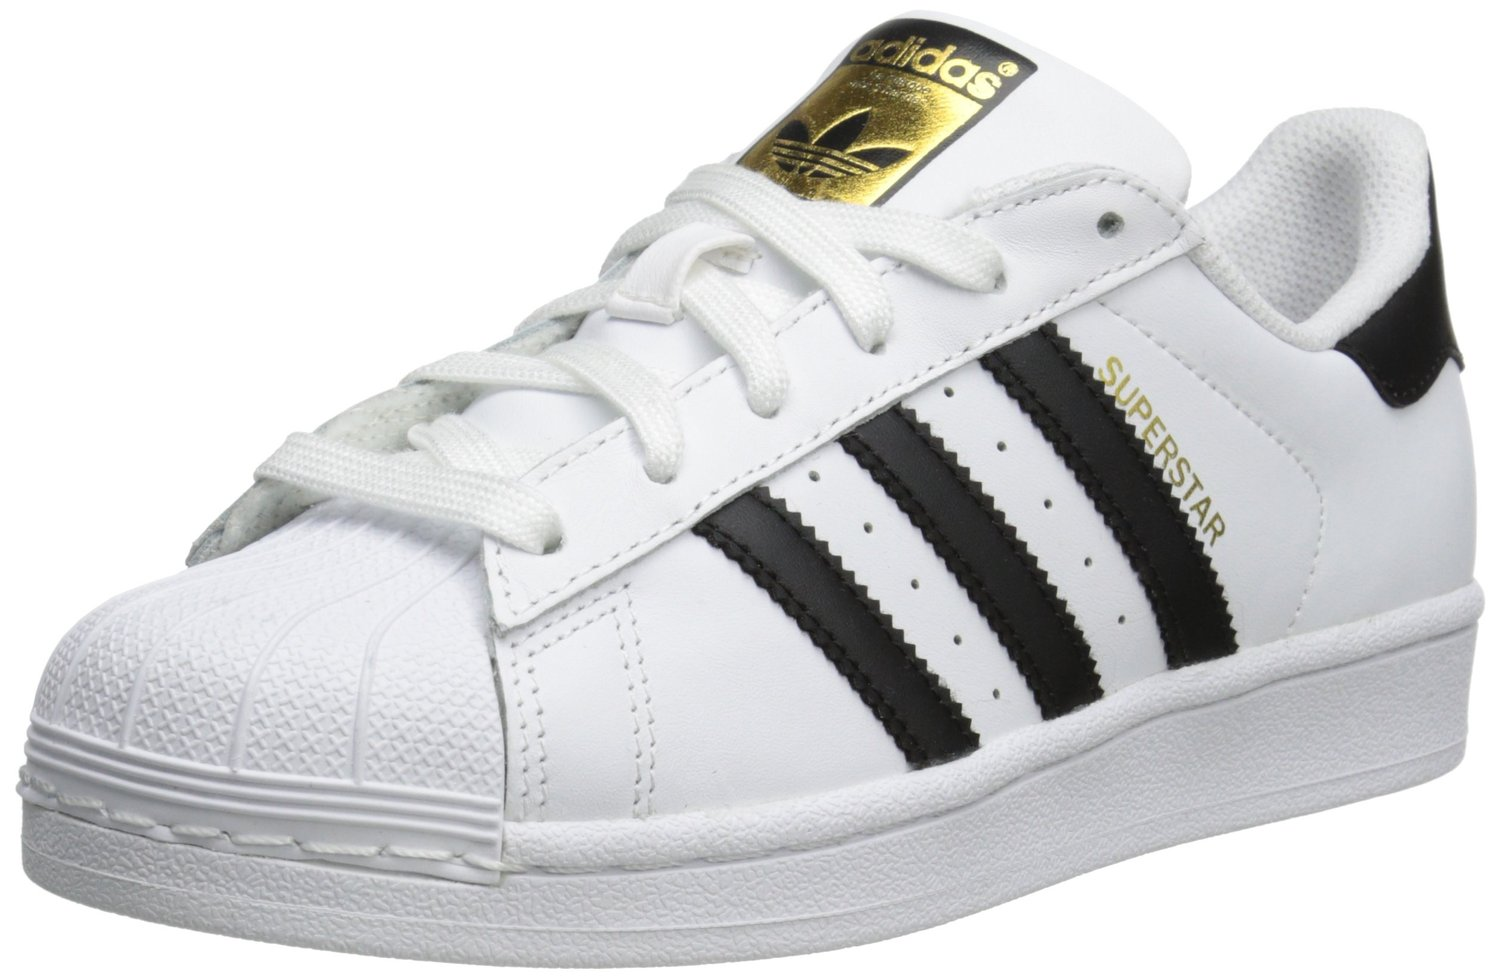 Adidas Faux Leather Shoes